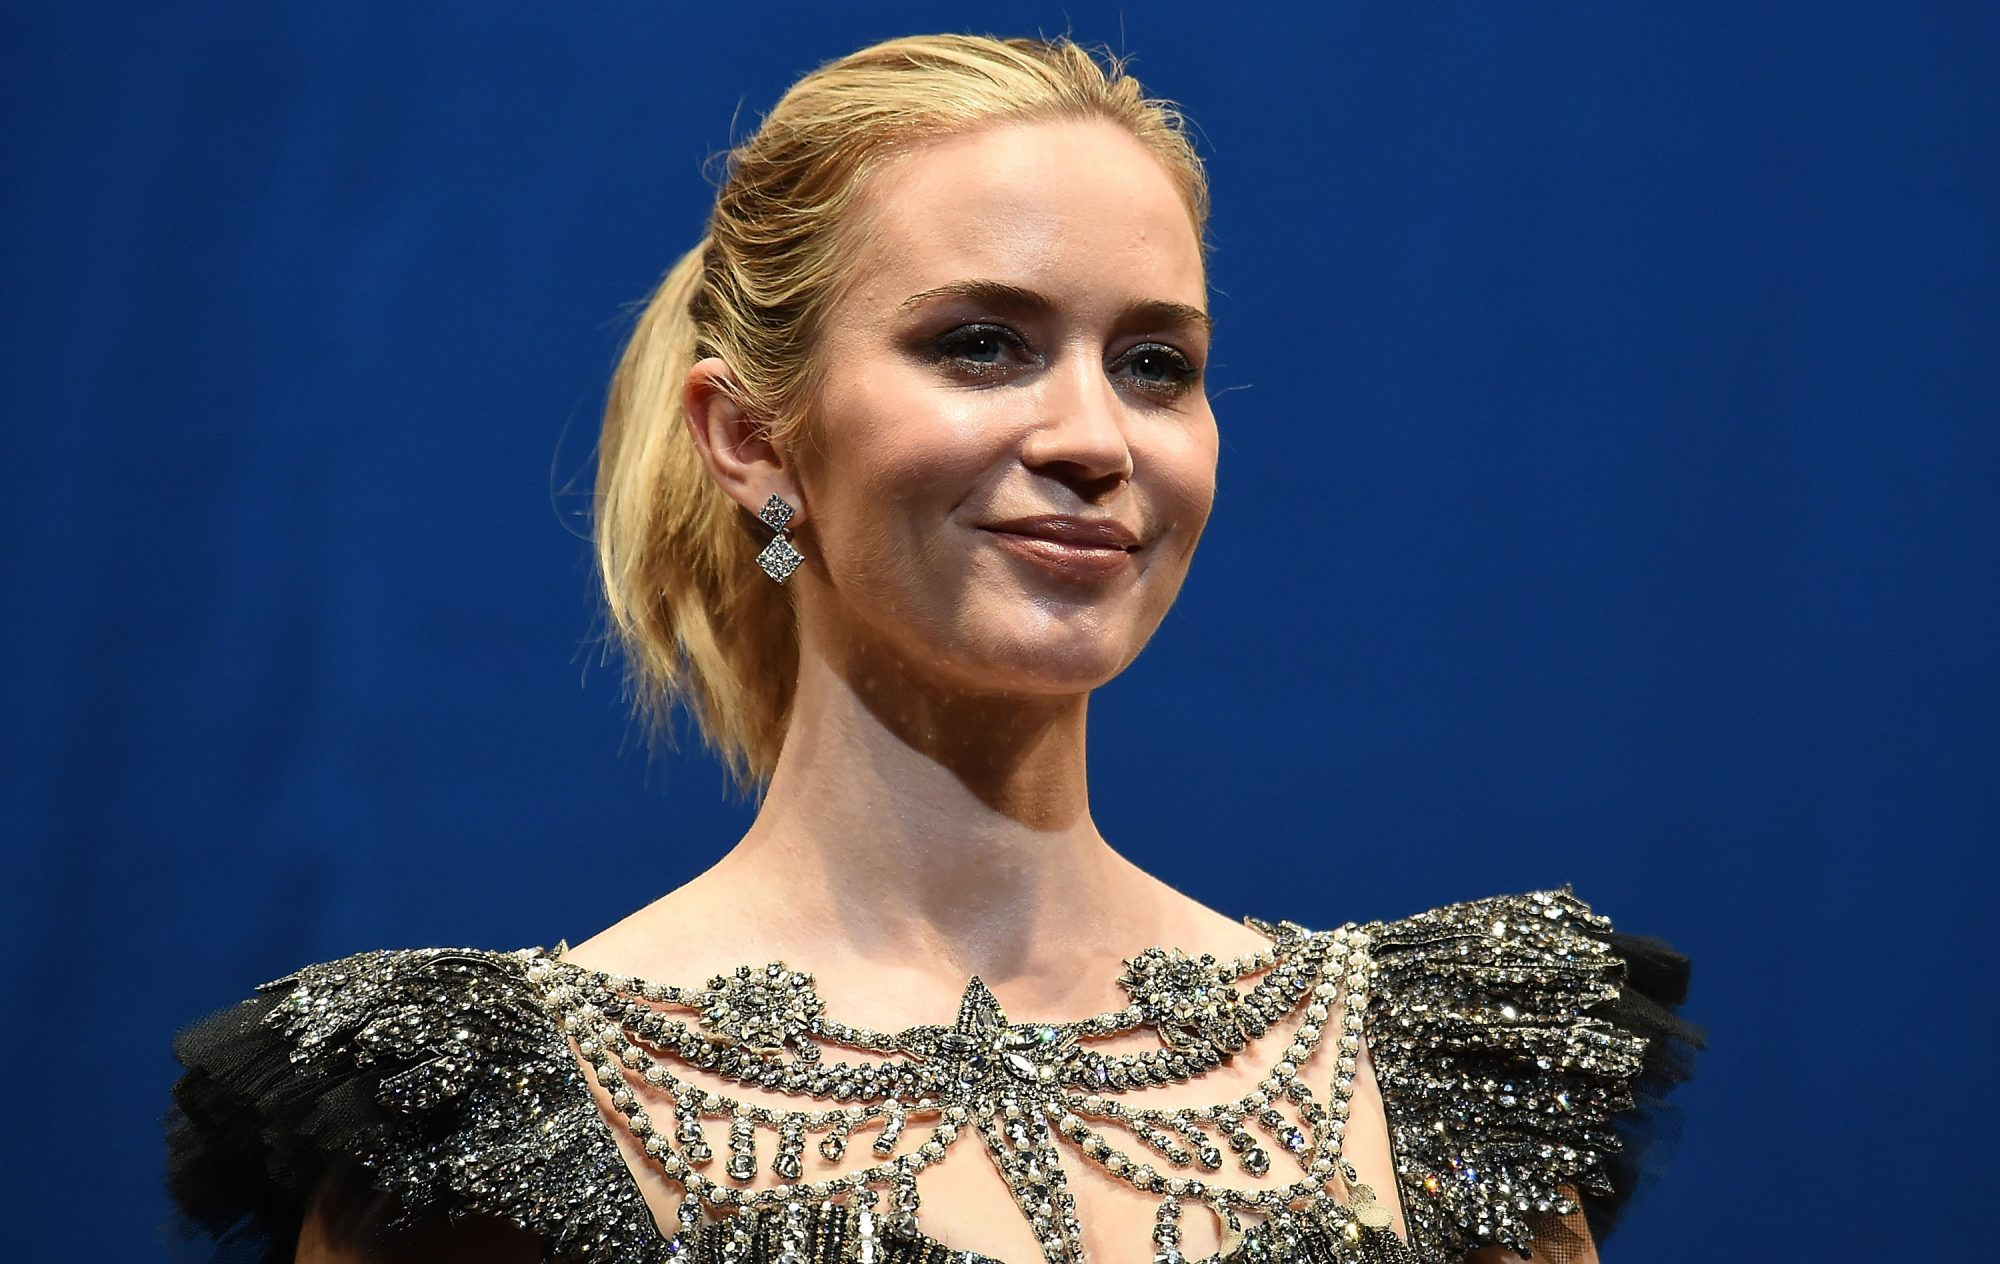 Emily Blunt Is a Blinged-Out Disney Princess in a Bustier-Cut Ball Gown